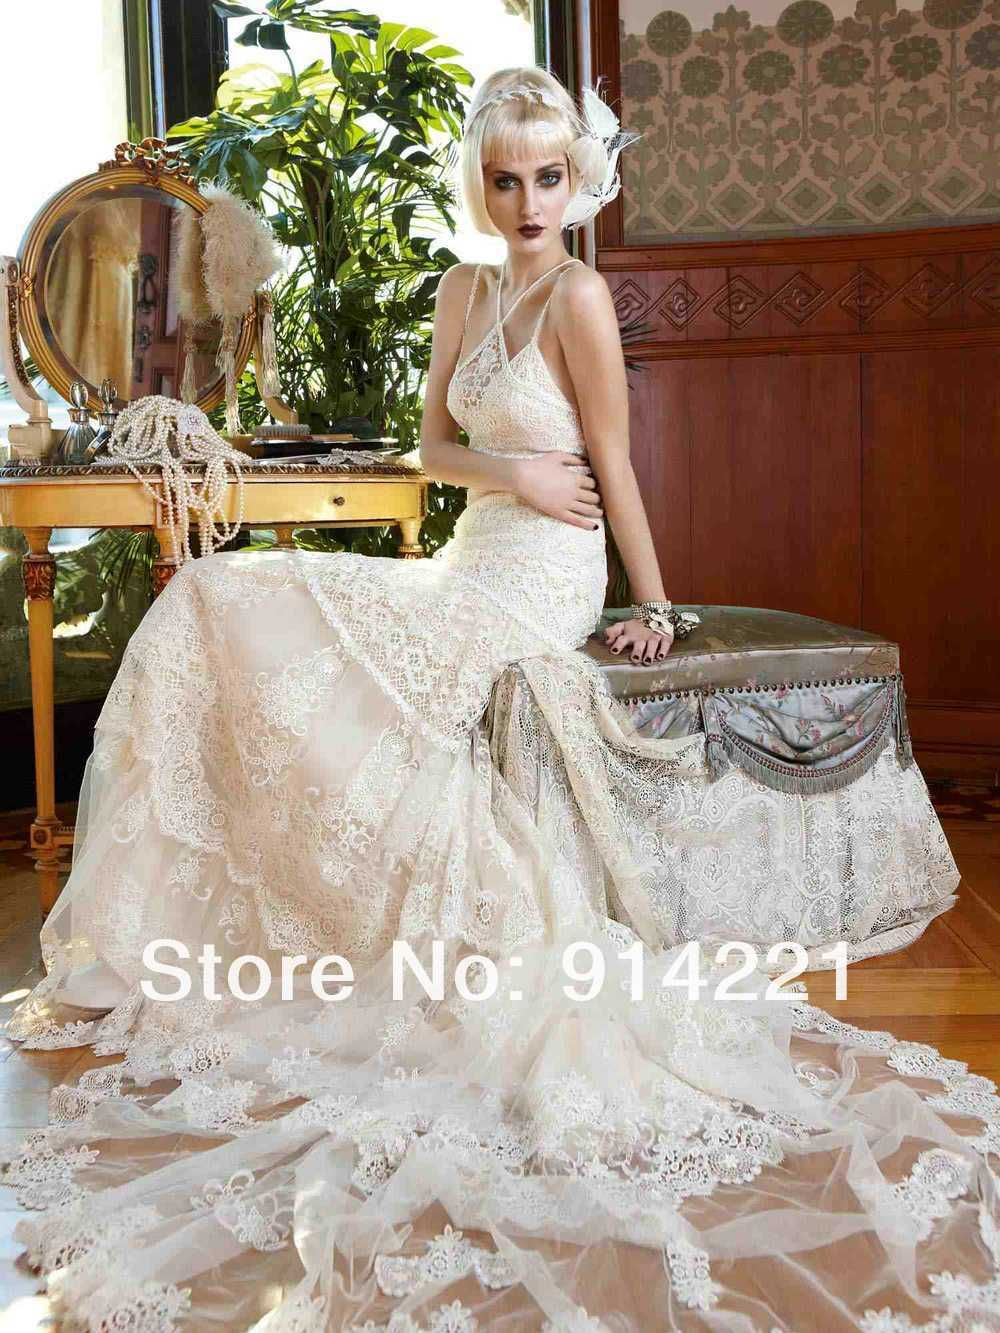 Sexy Lace Bridal Dress Spaghetti Sheath Floor Length 2013 Top Temperament Wedding Dresses WC521-in Wedding Dresses from Apparel & Accessorie...AMAZING!